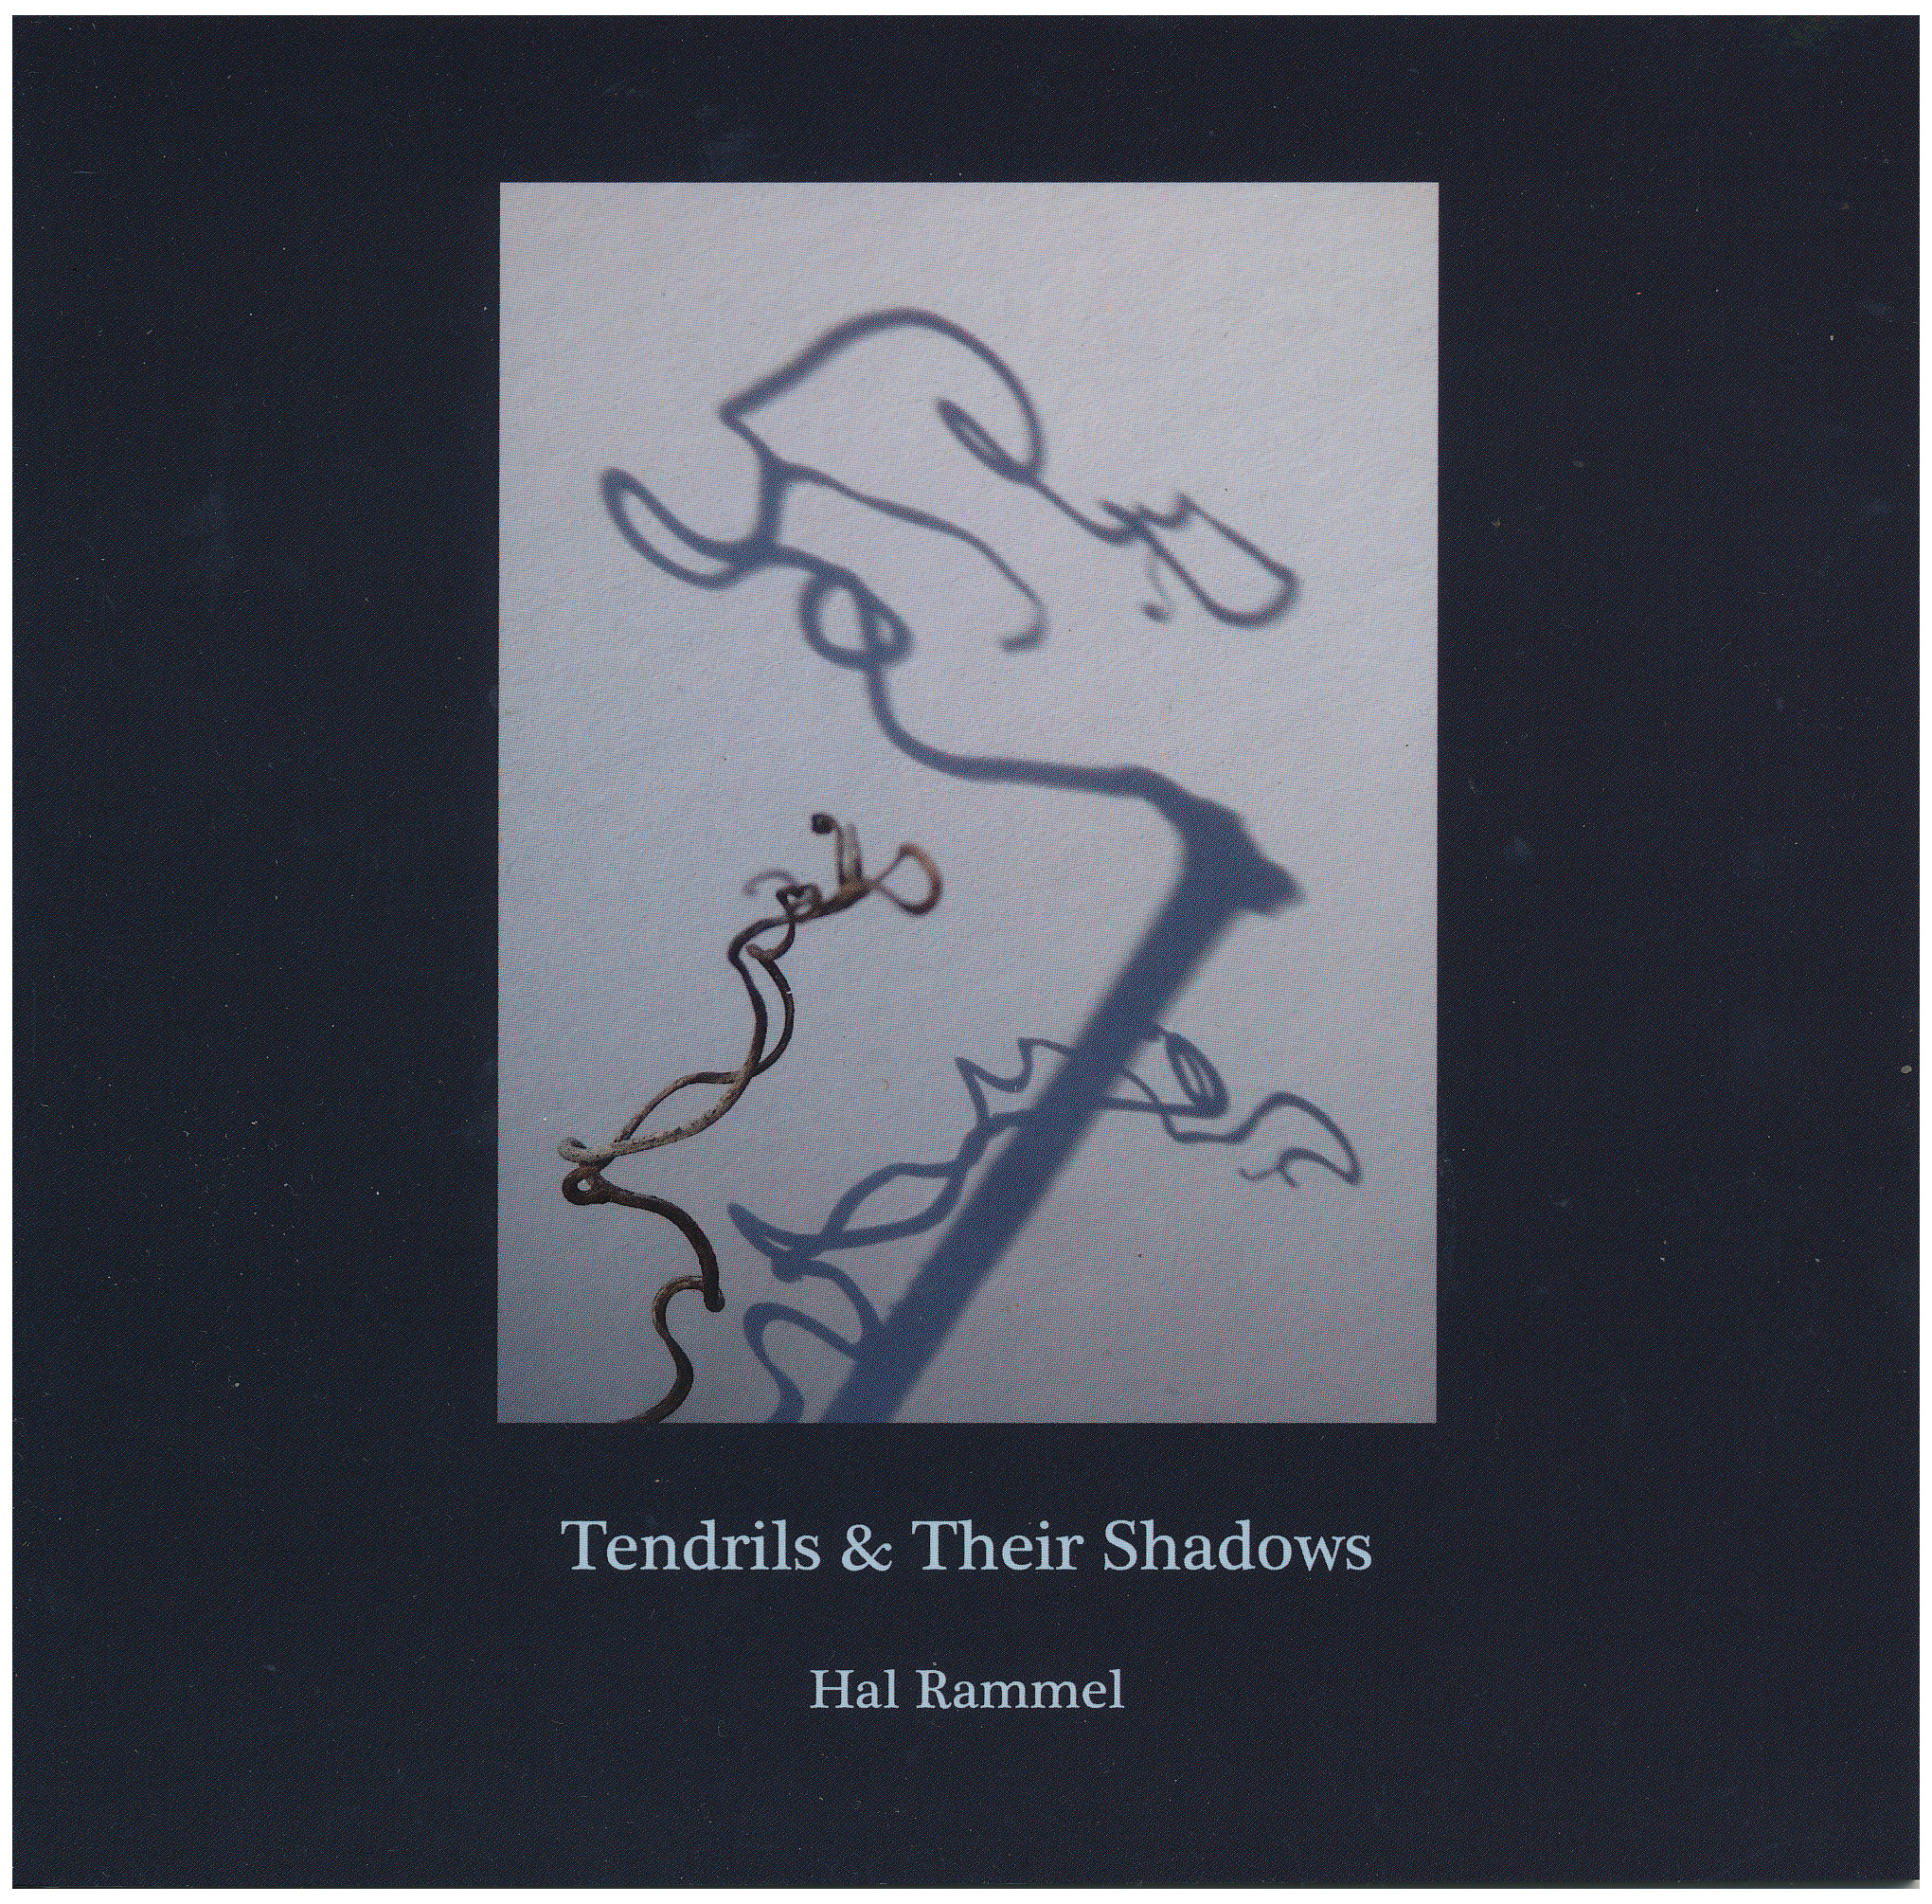 Tendrils & Their Shadows